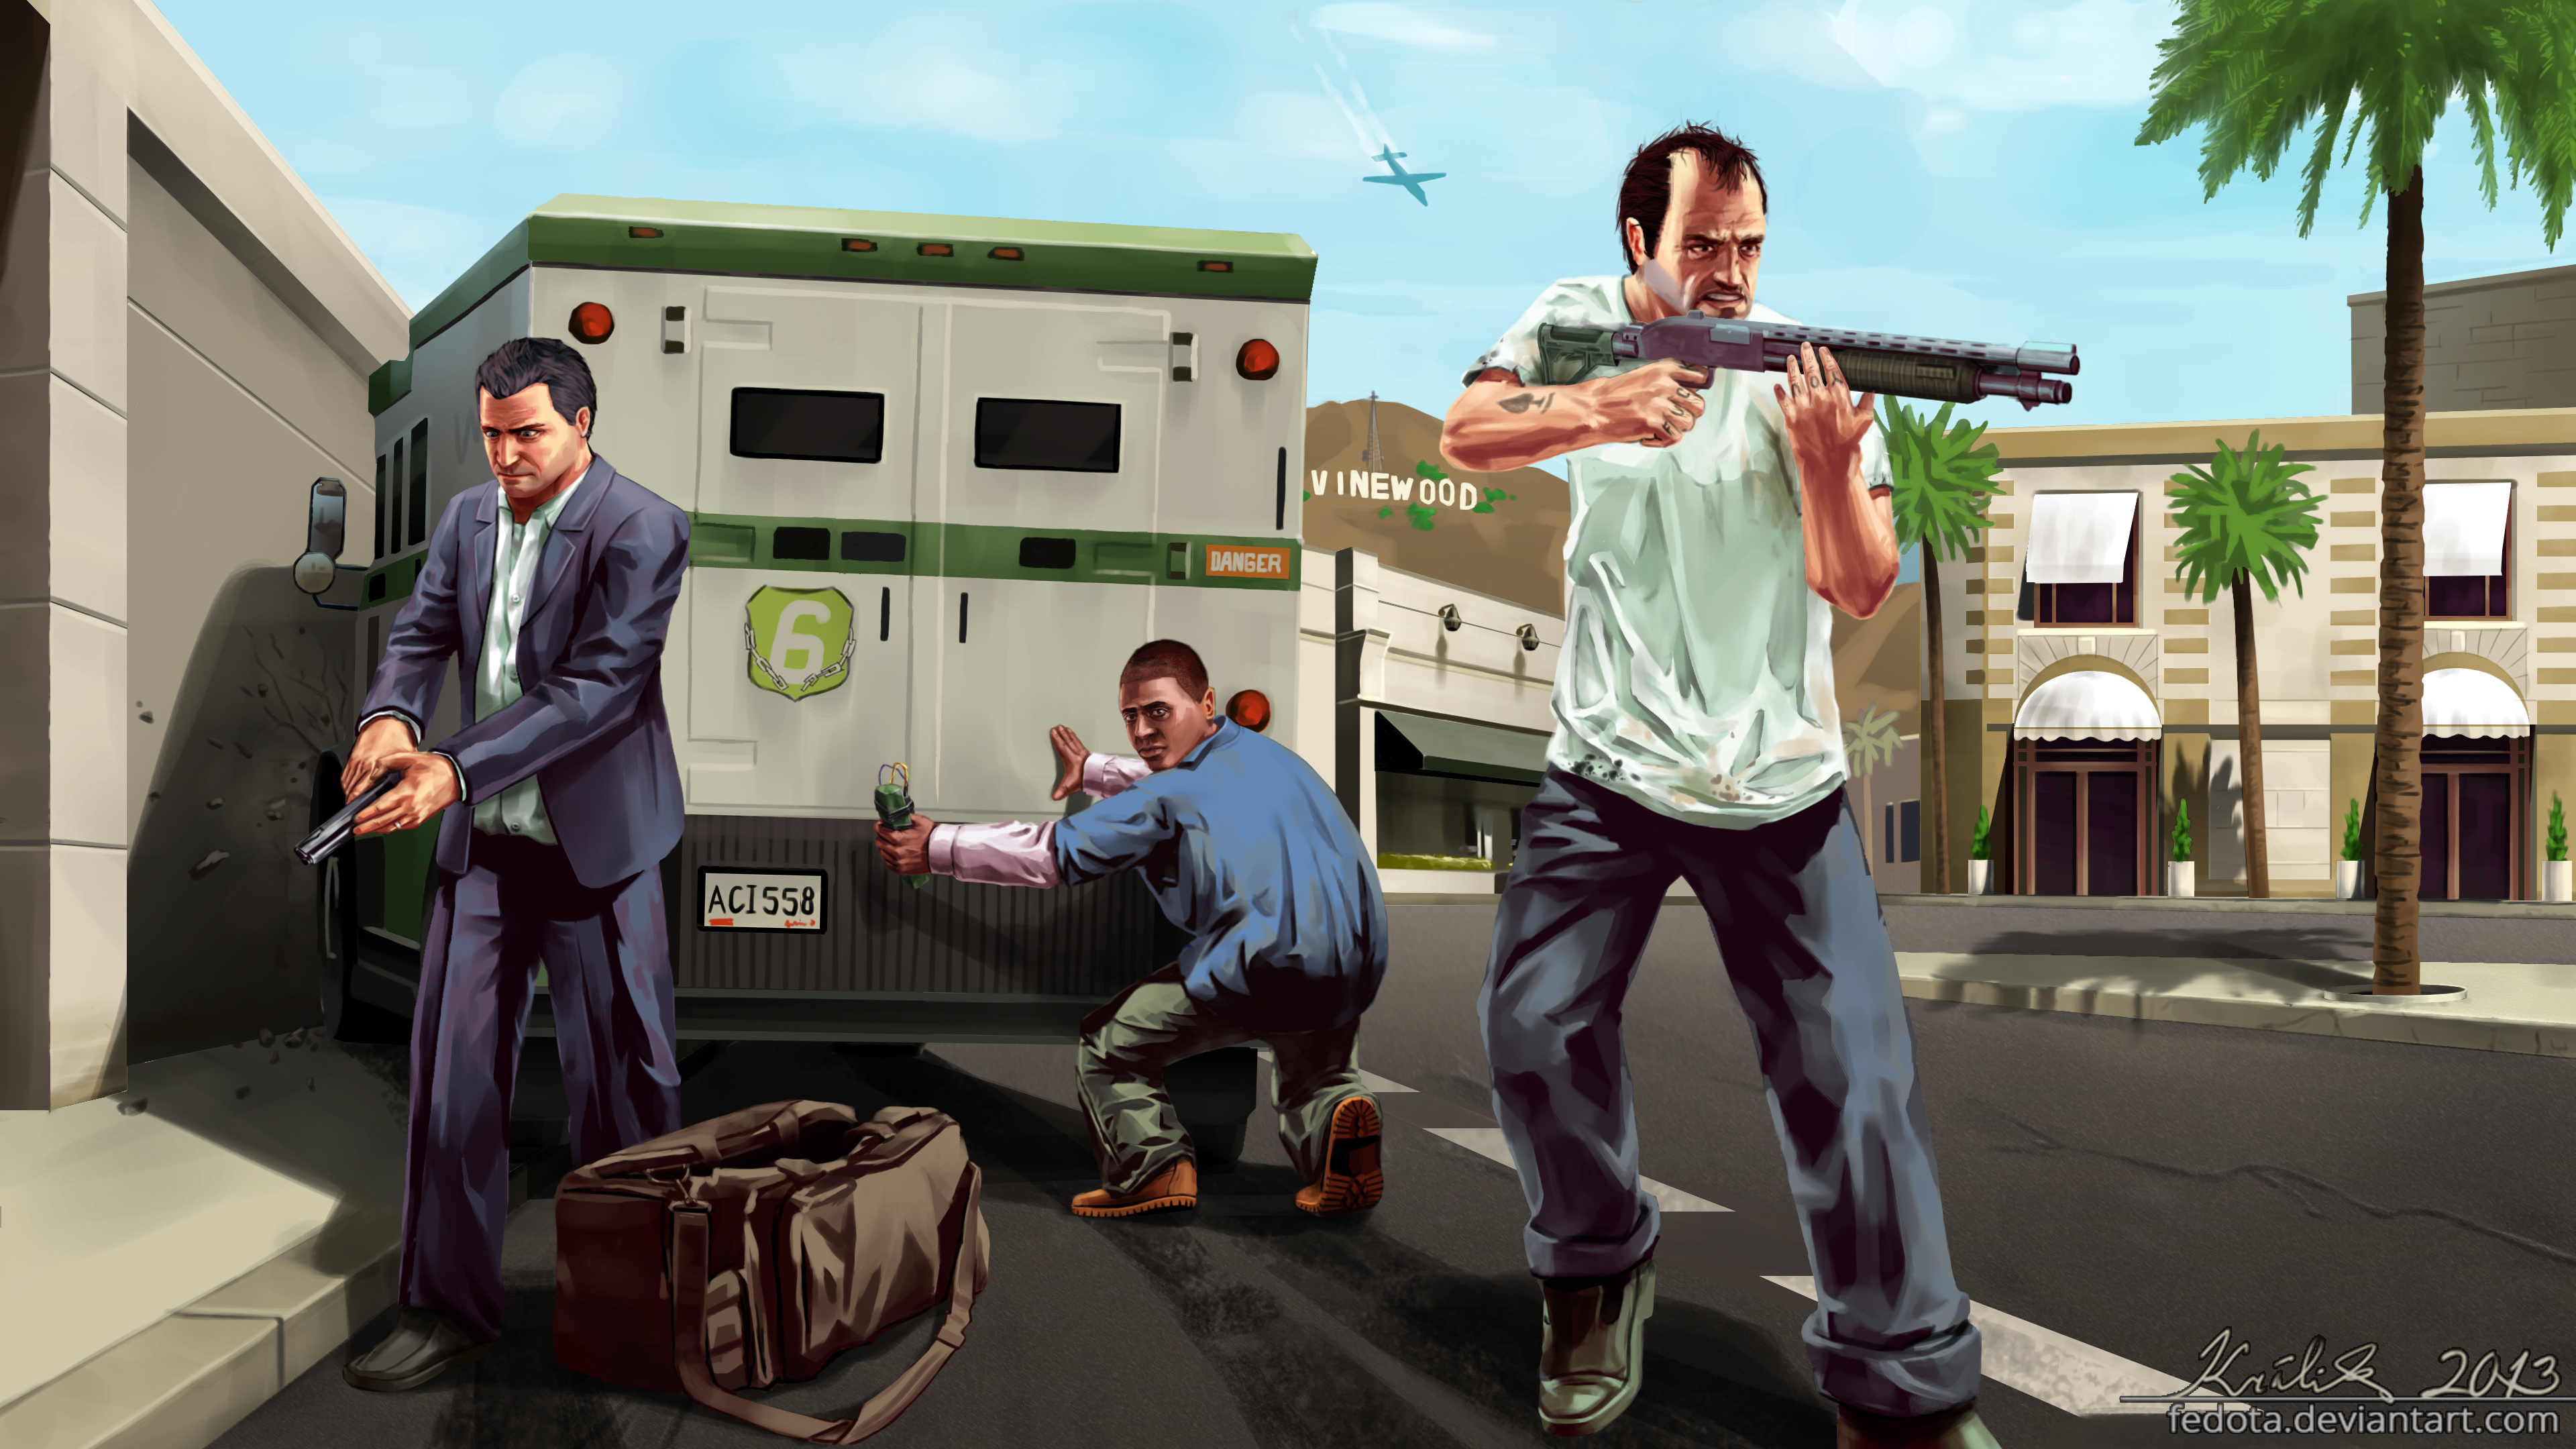 Grand theft auto v 4k by fedota on deviantart for Painting games com